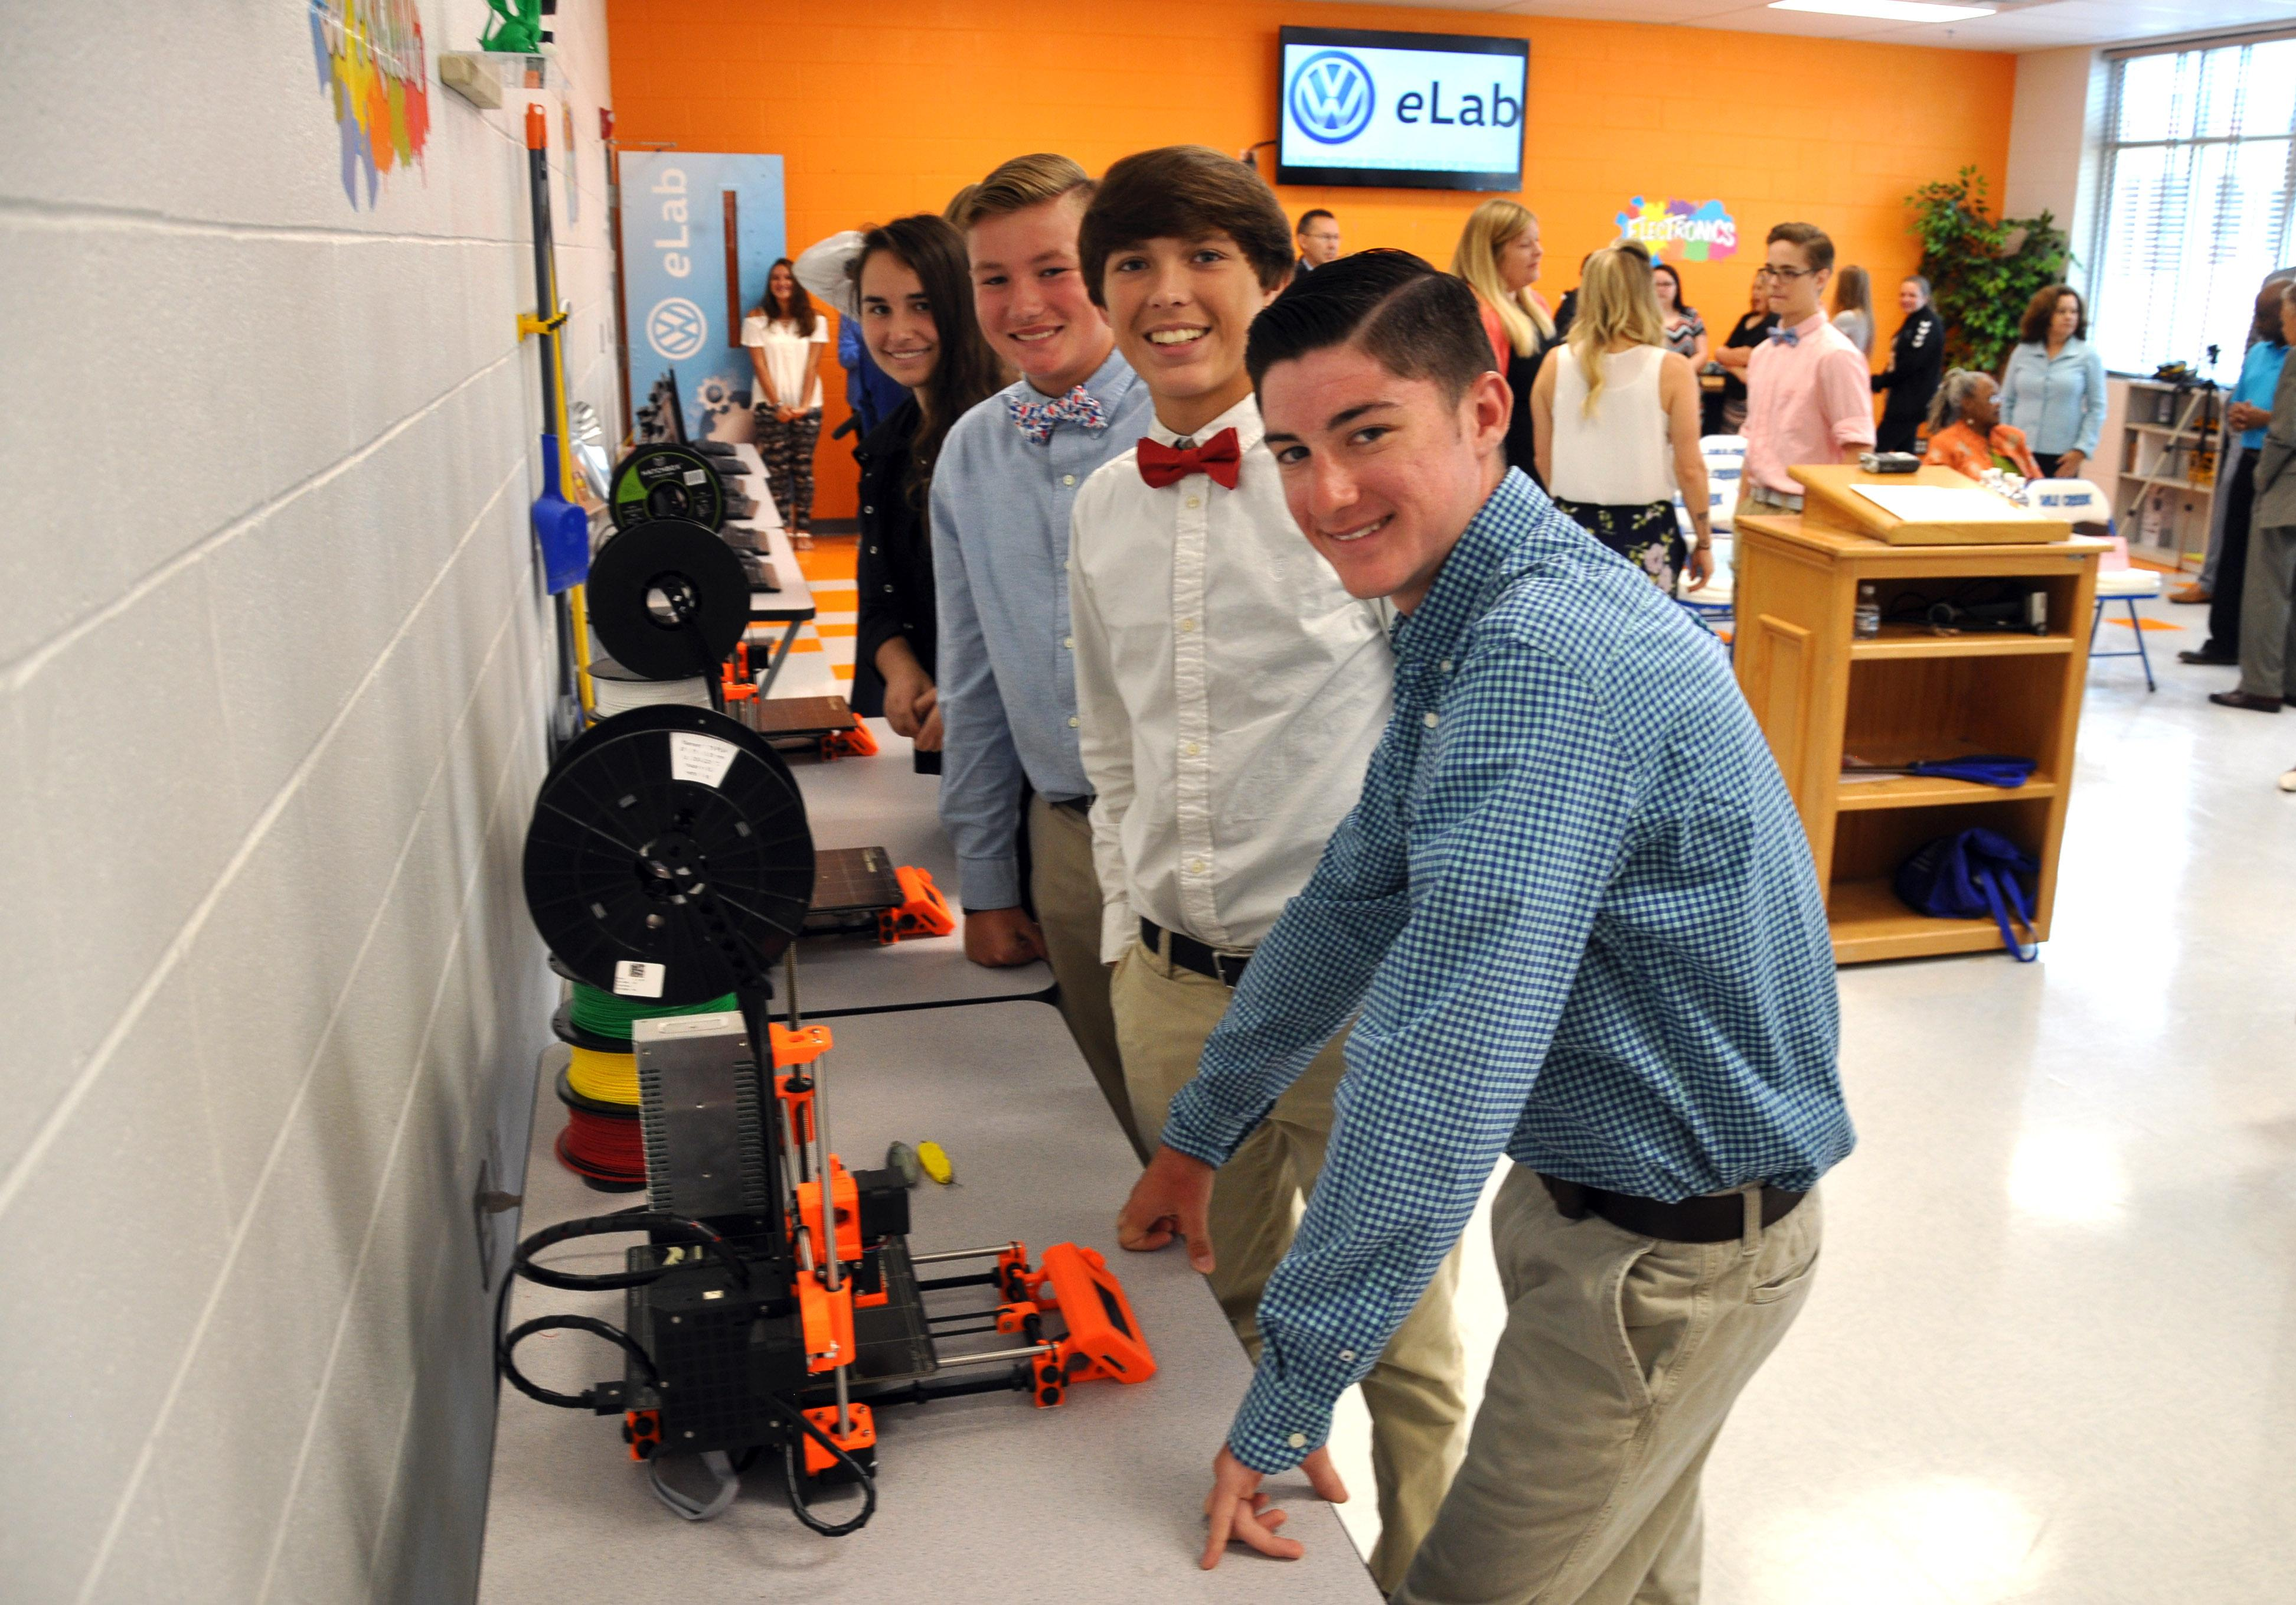 Students at Sale Creek Middle School excited for the opening of the Volkswagen eLab. (Image: Volkswagen Chattanooga)